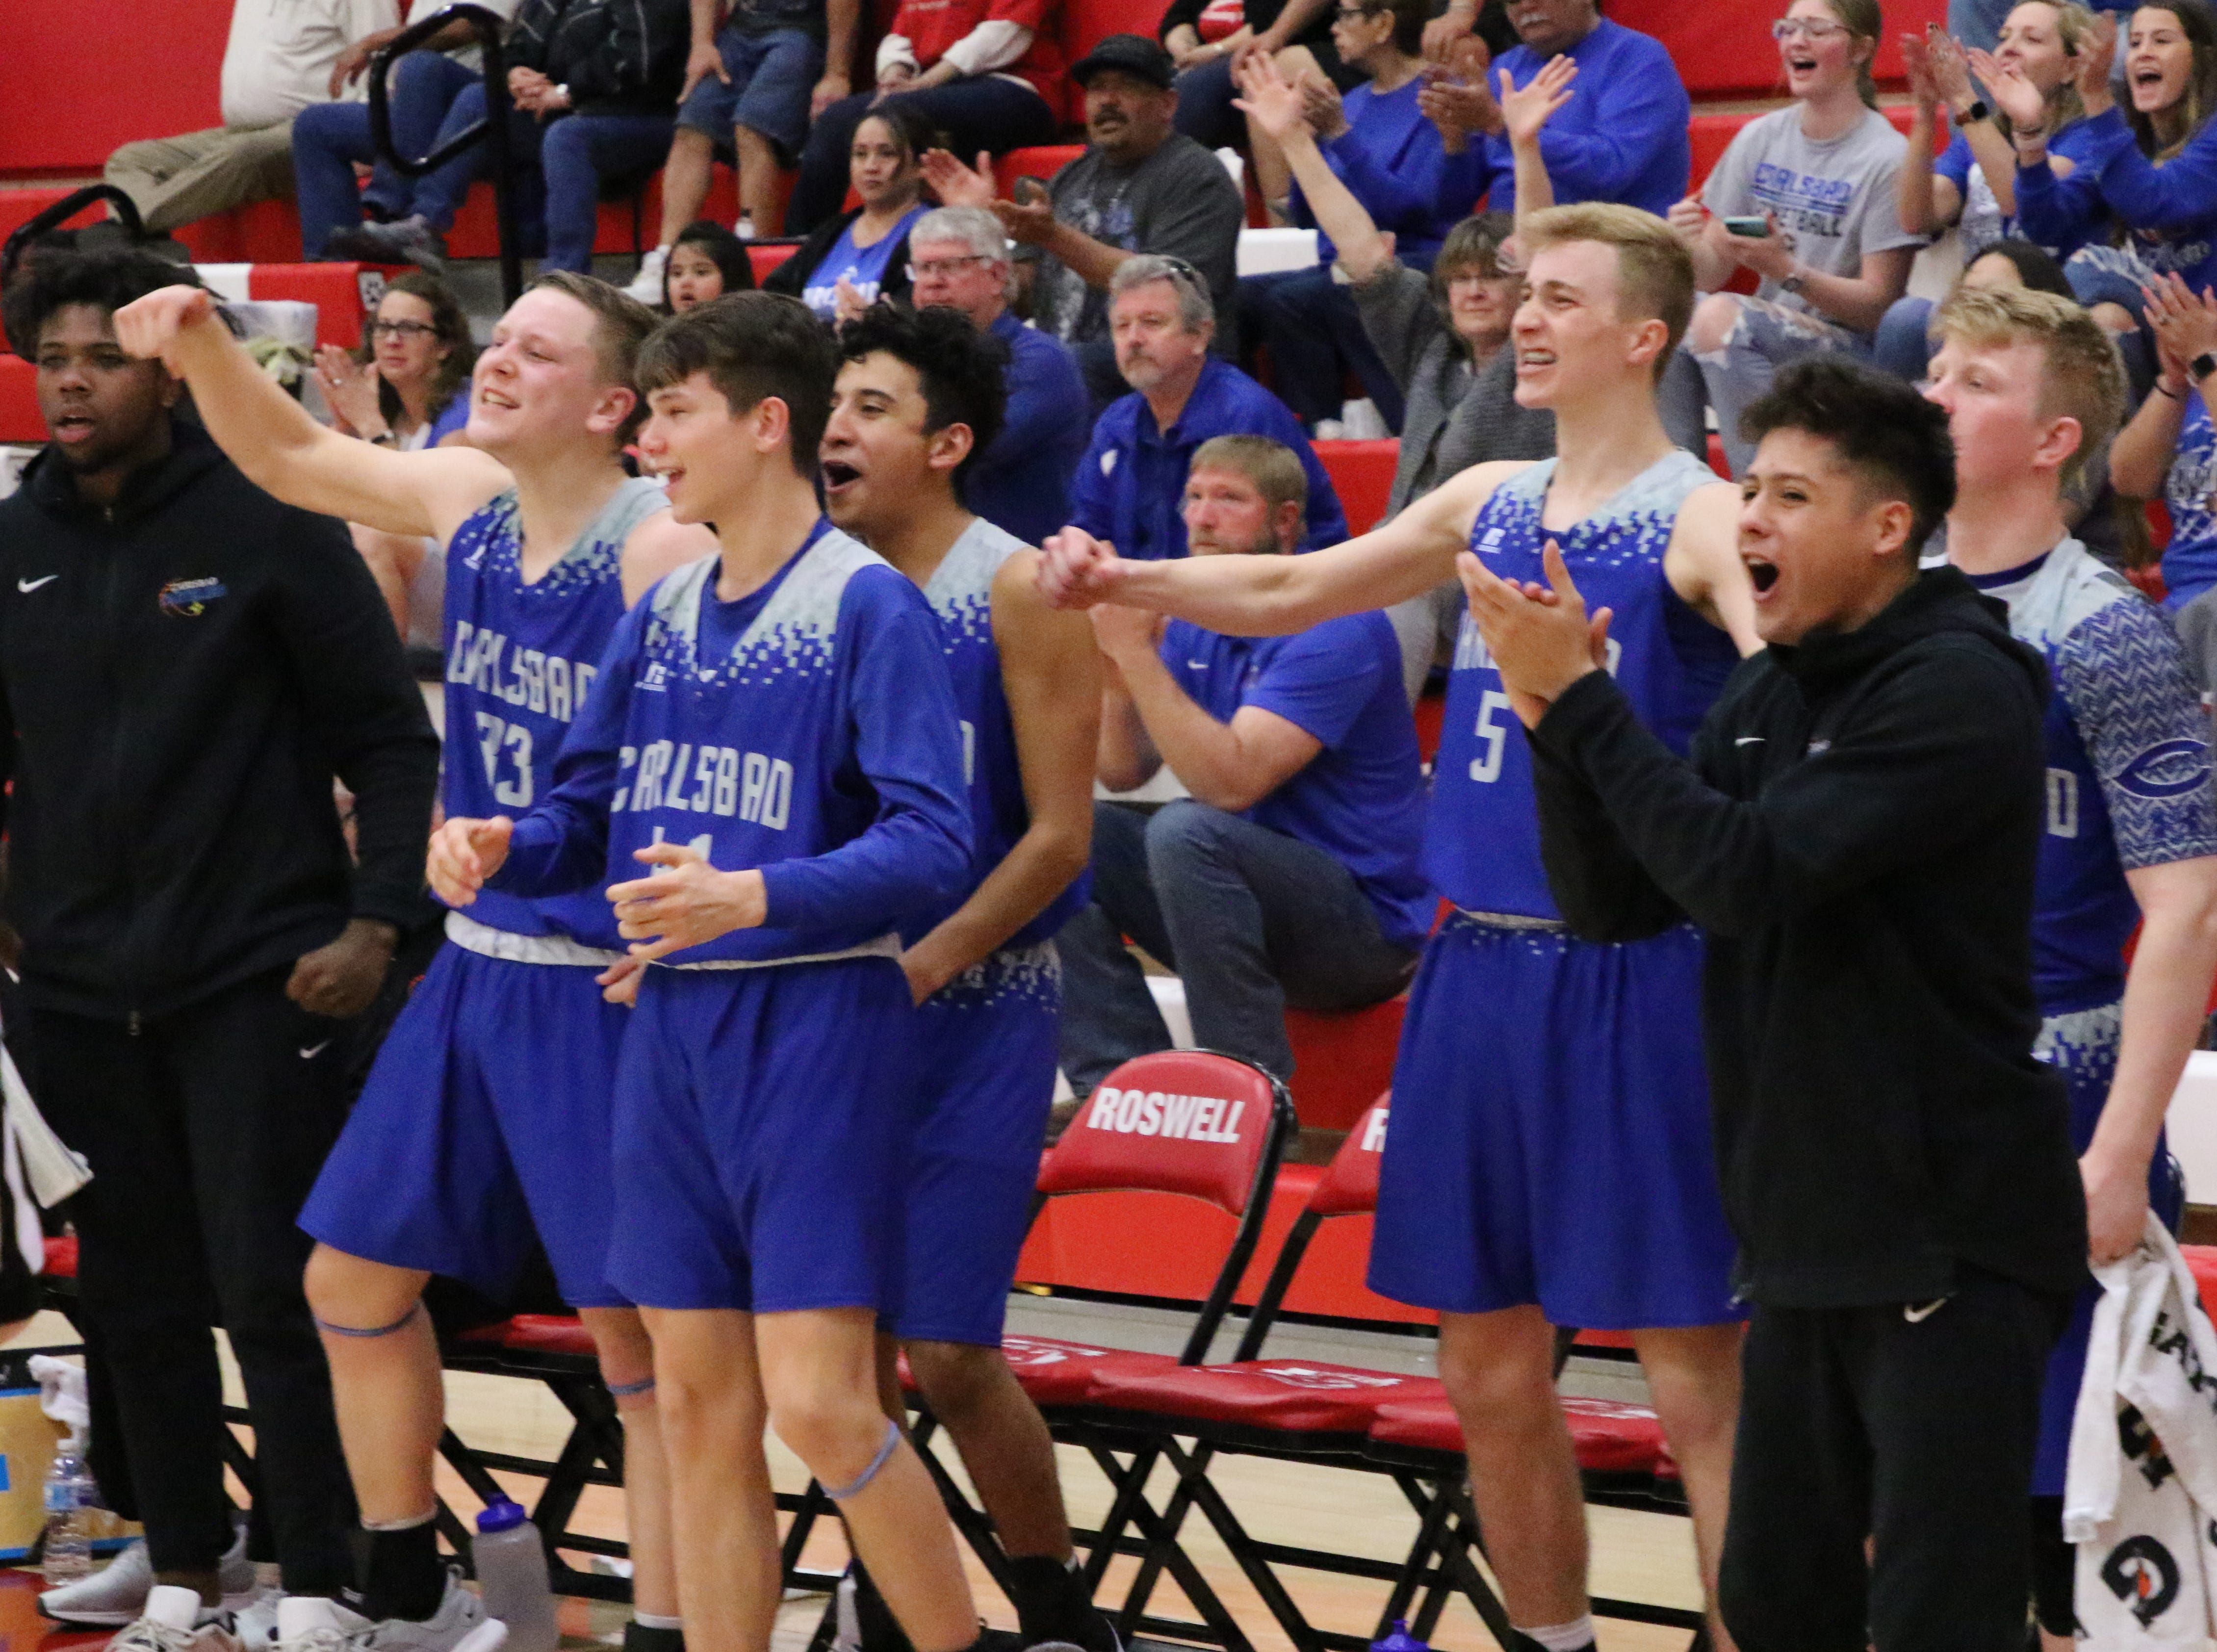 Carlsbad's bench erupts after Matt Fernandez made his first 3-point shot in the fourth quarter of Tuesday's Class 4-5A tournament game against Roswell. Carlsbad went on a 16-2 run to start out the final quarter.